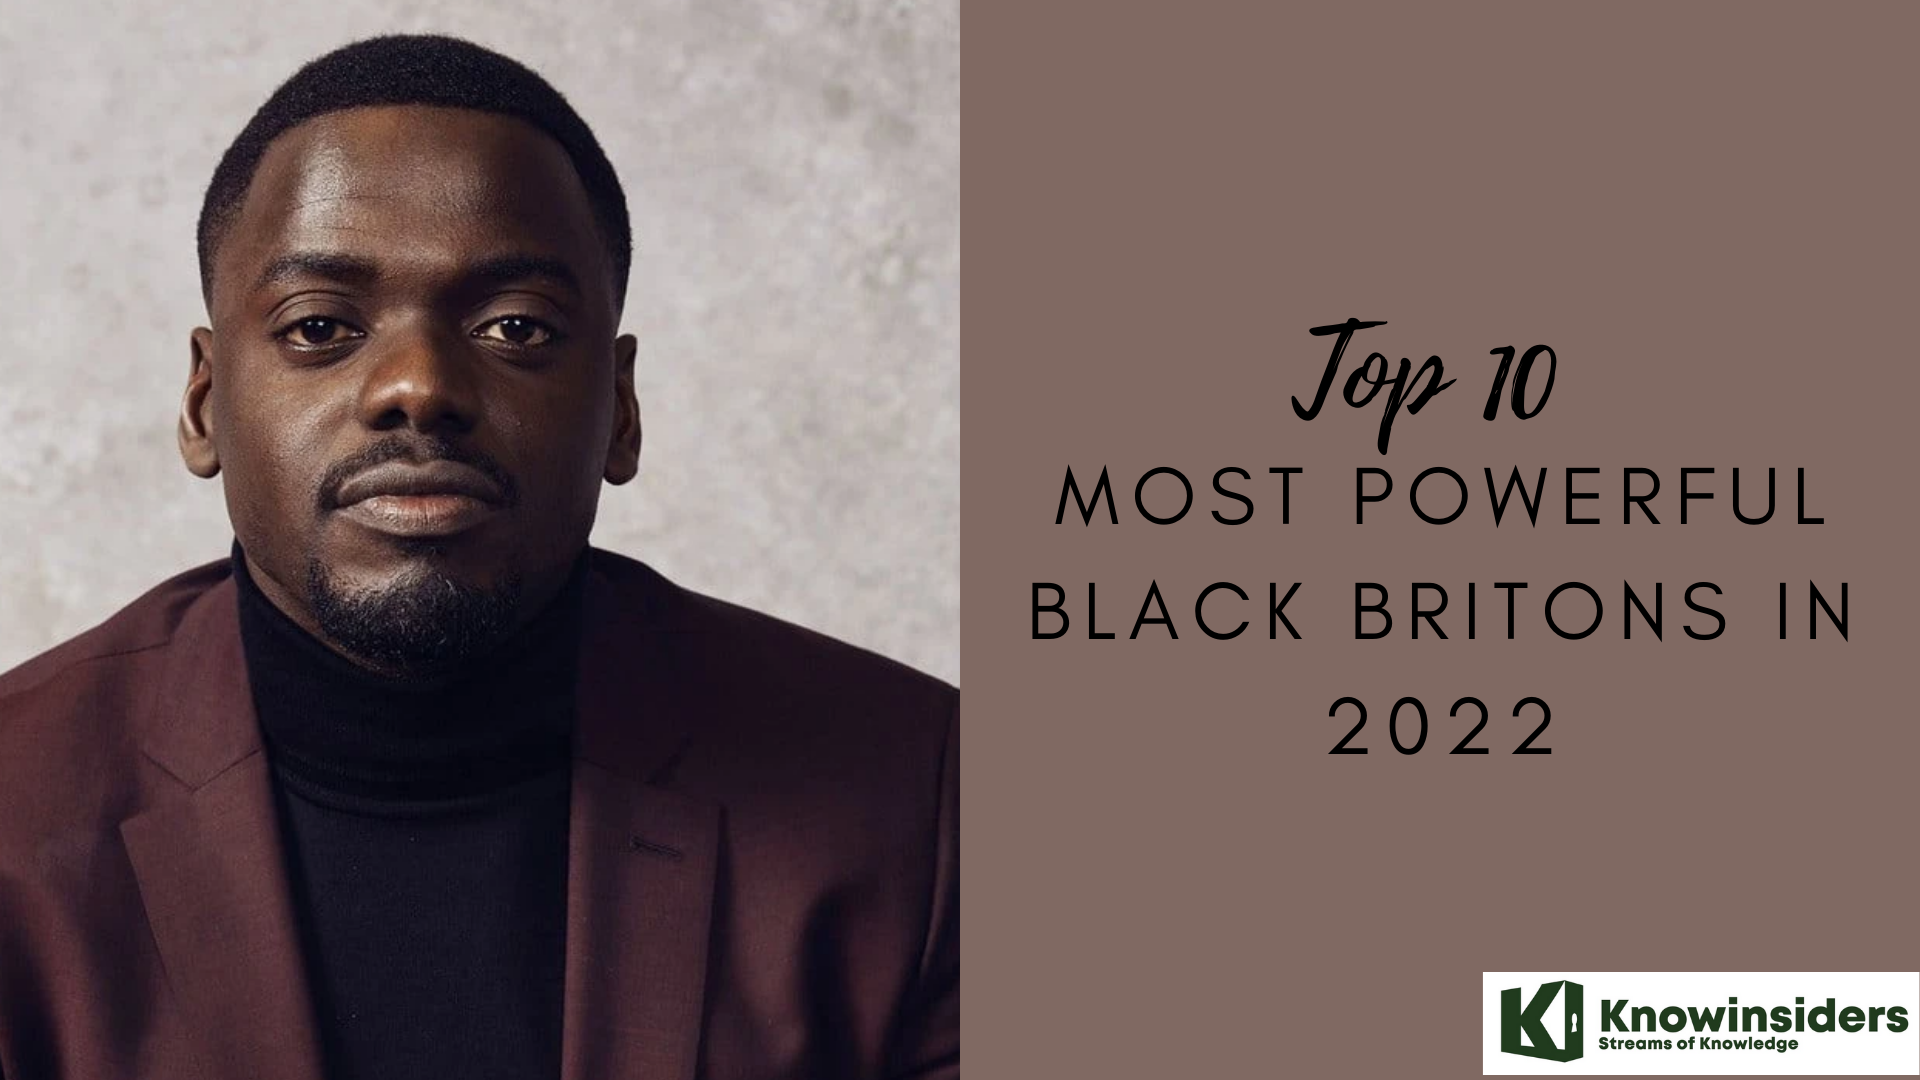 Top 10 Most Powerful Black Persons In The UK of 2022